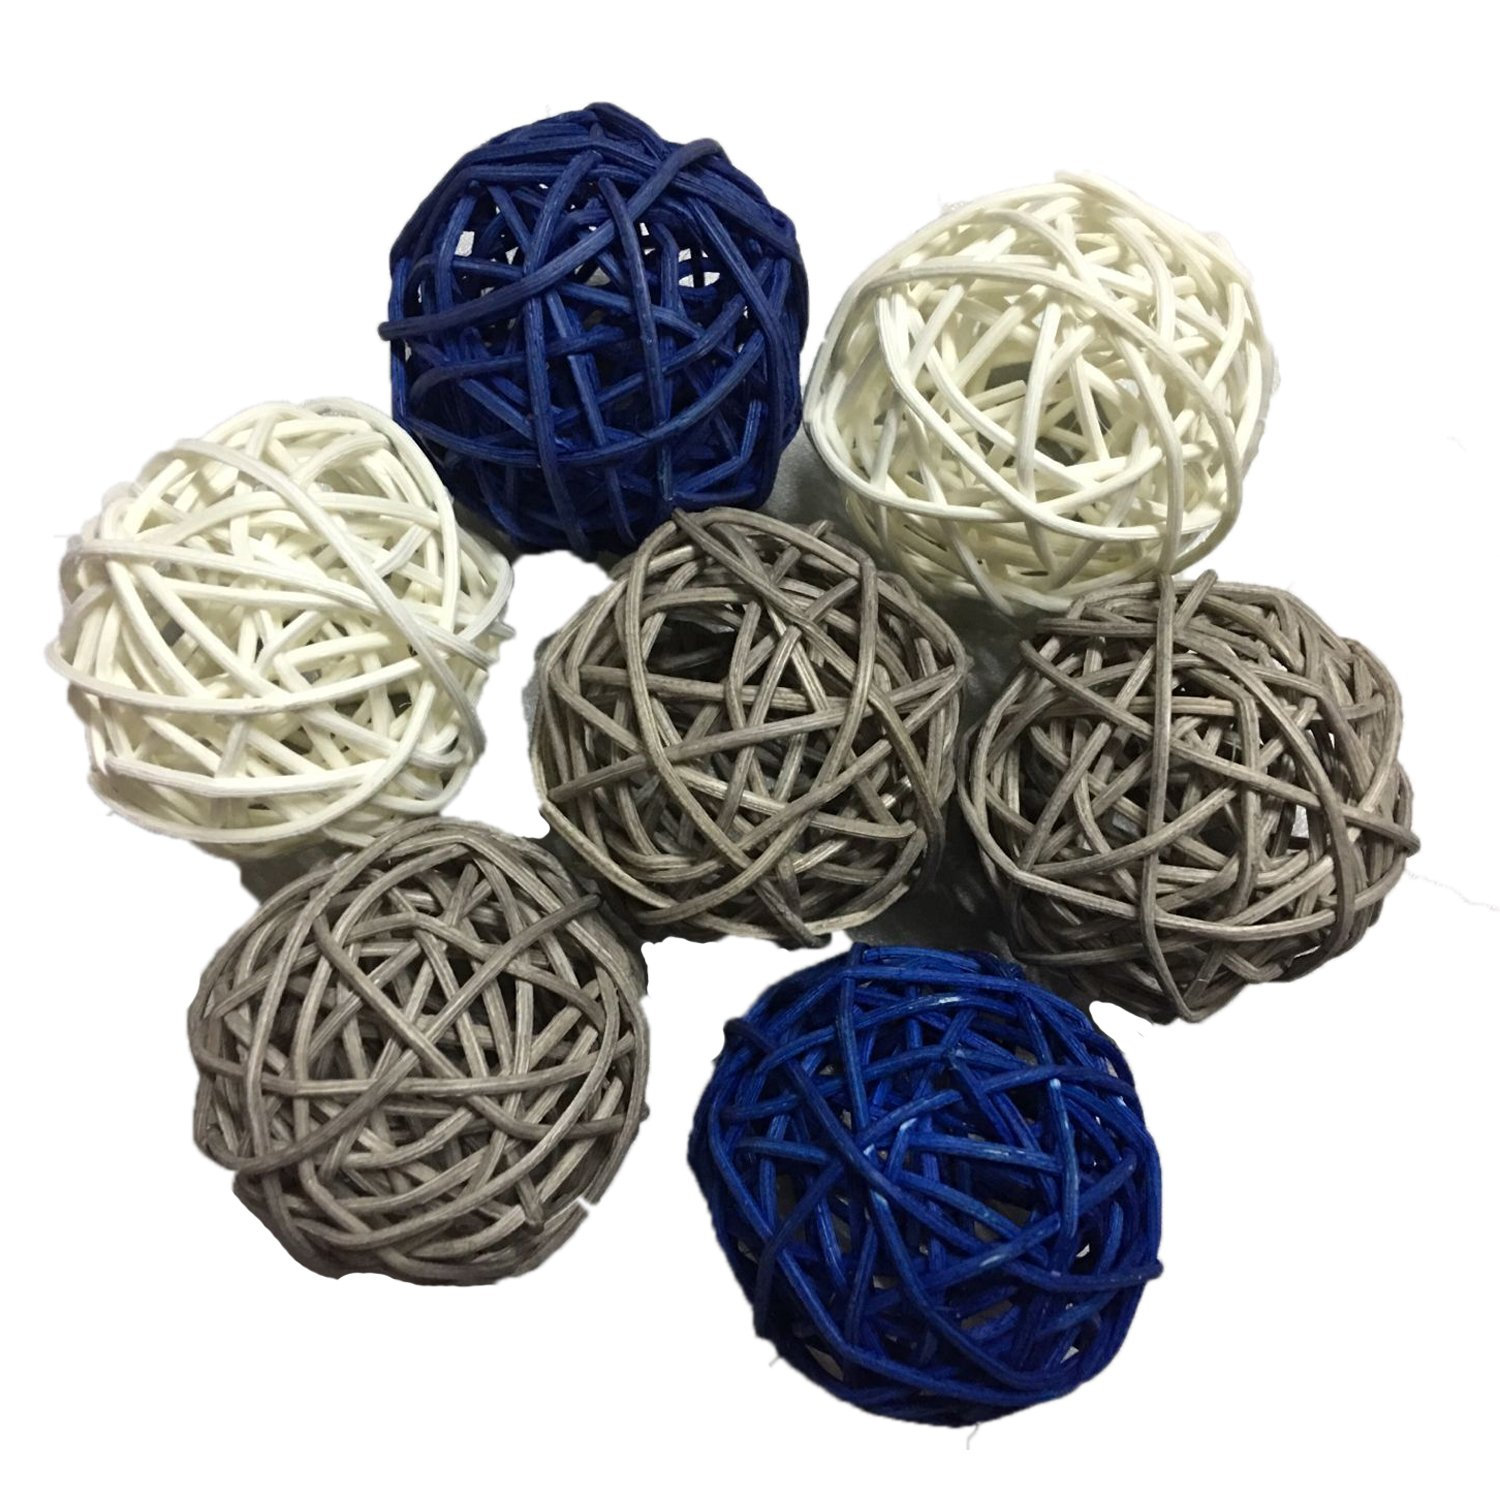 15PCS Mixed Navy Blue Grey White Decorative Wicker Rattan Ball Nautical Themed Party Wedding Birthday Baby Shower Decoration DreammadeStudio